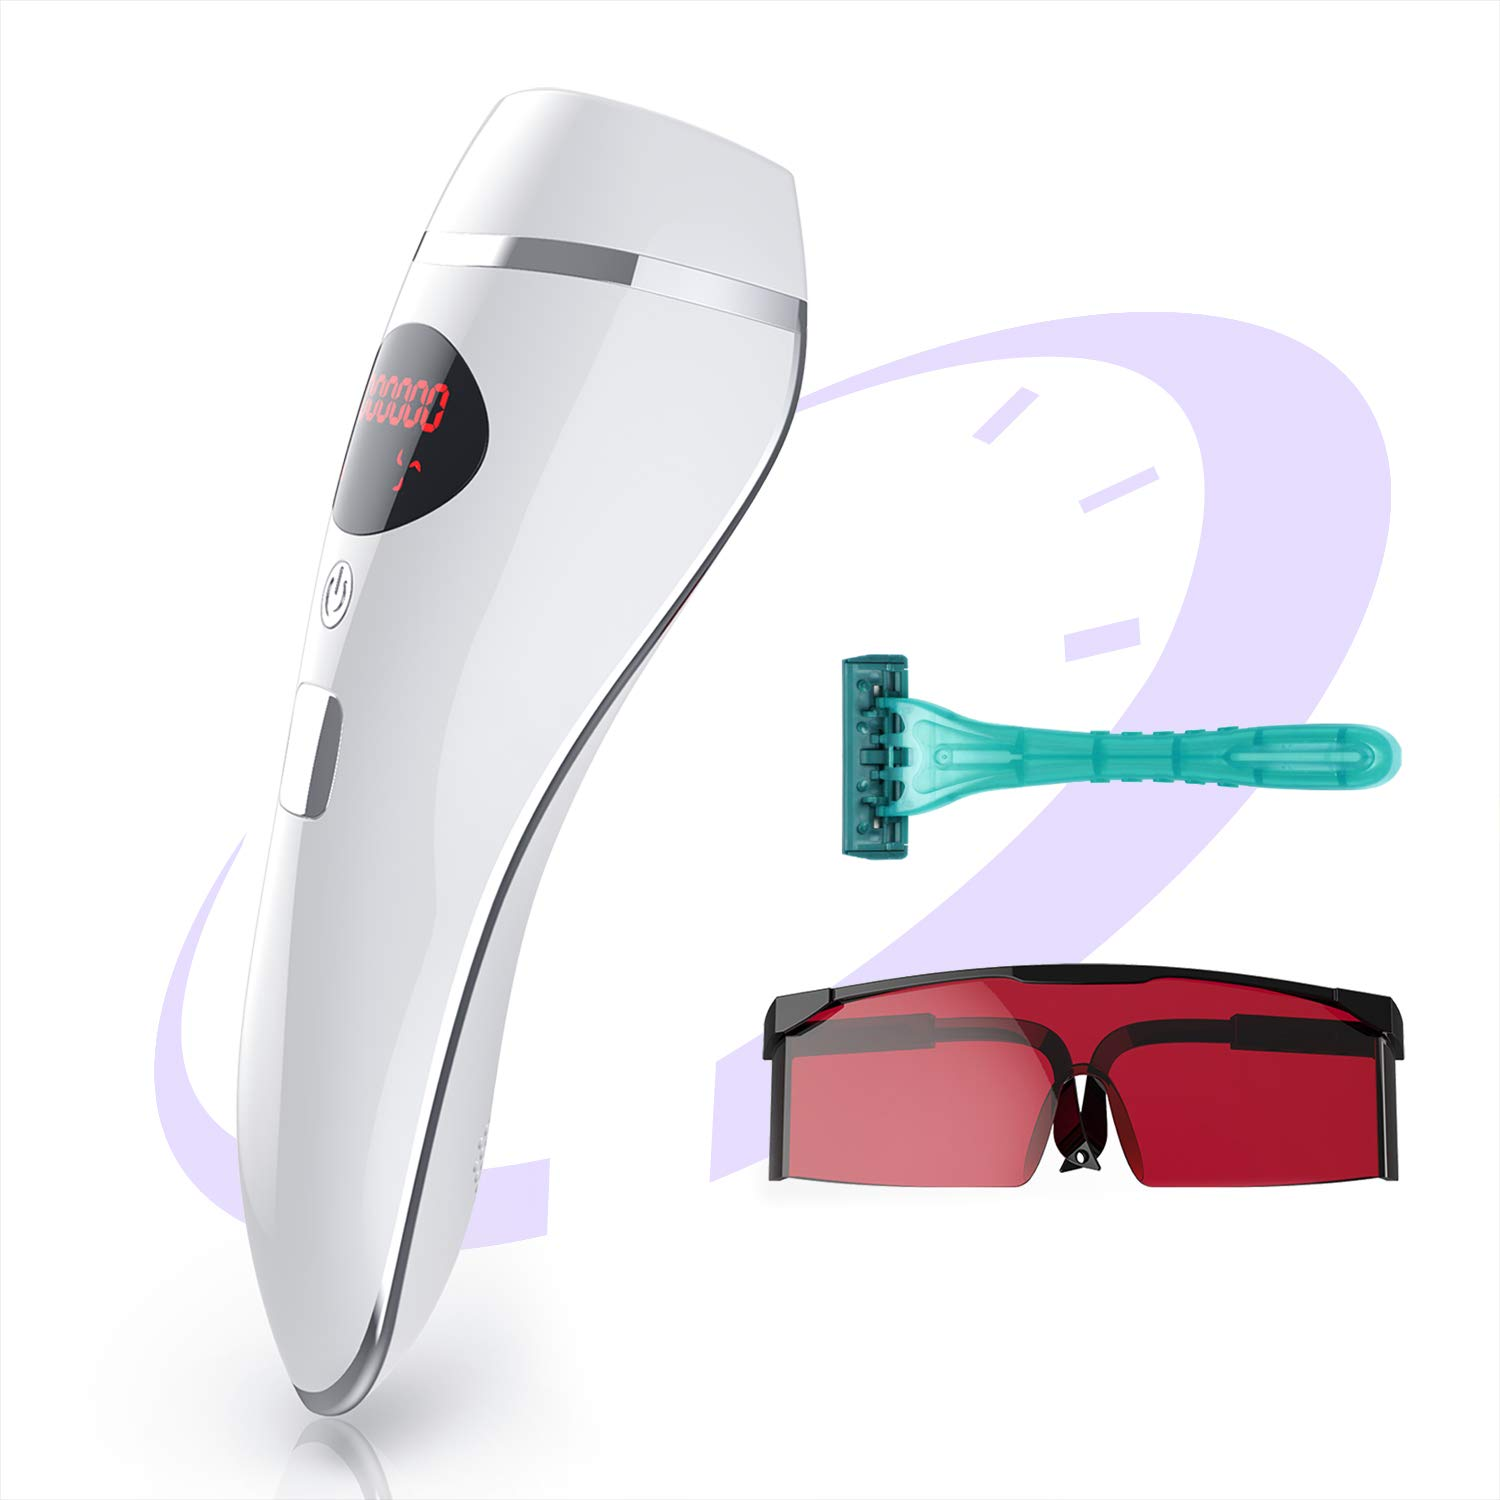 IPL Hair Removal System for Women & Men Permanent Painless 600,000 Flashes Body Facial Profesional Device Hair Remover Treatment Wholebody Home Use (White-Rose)